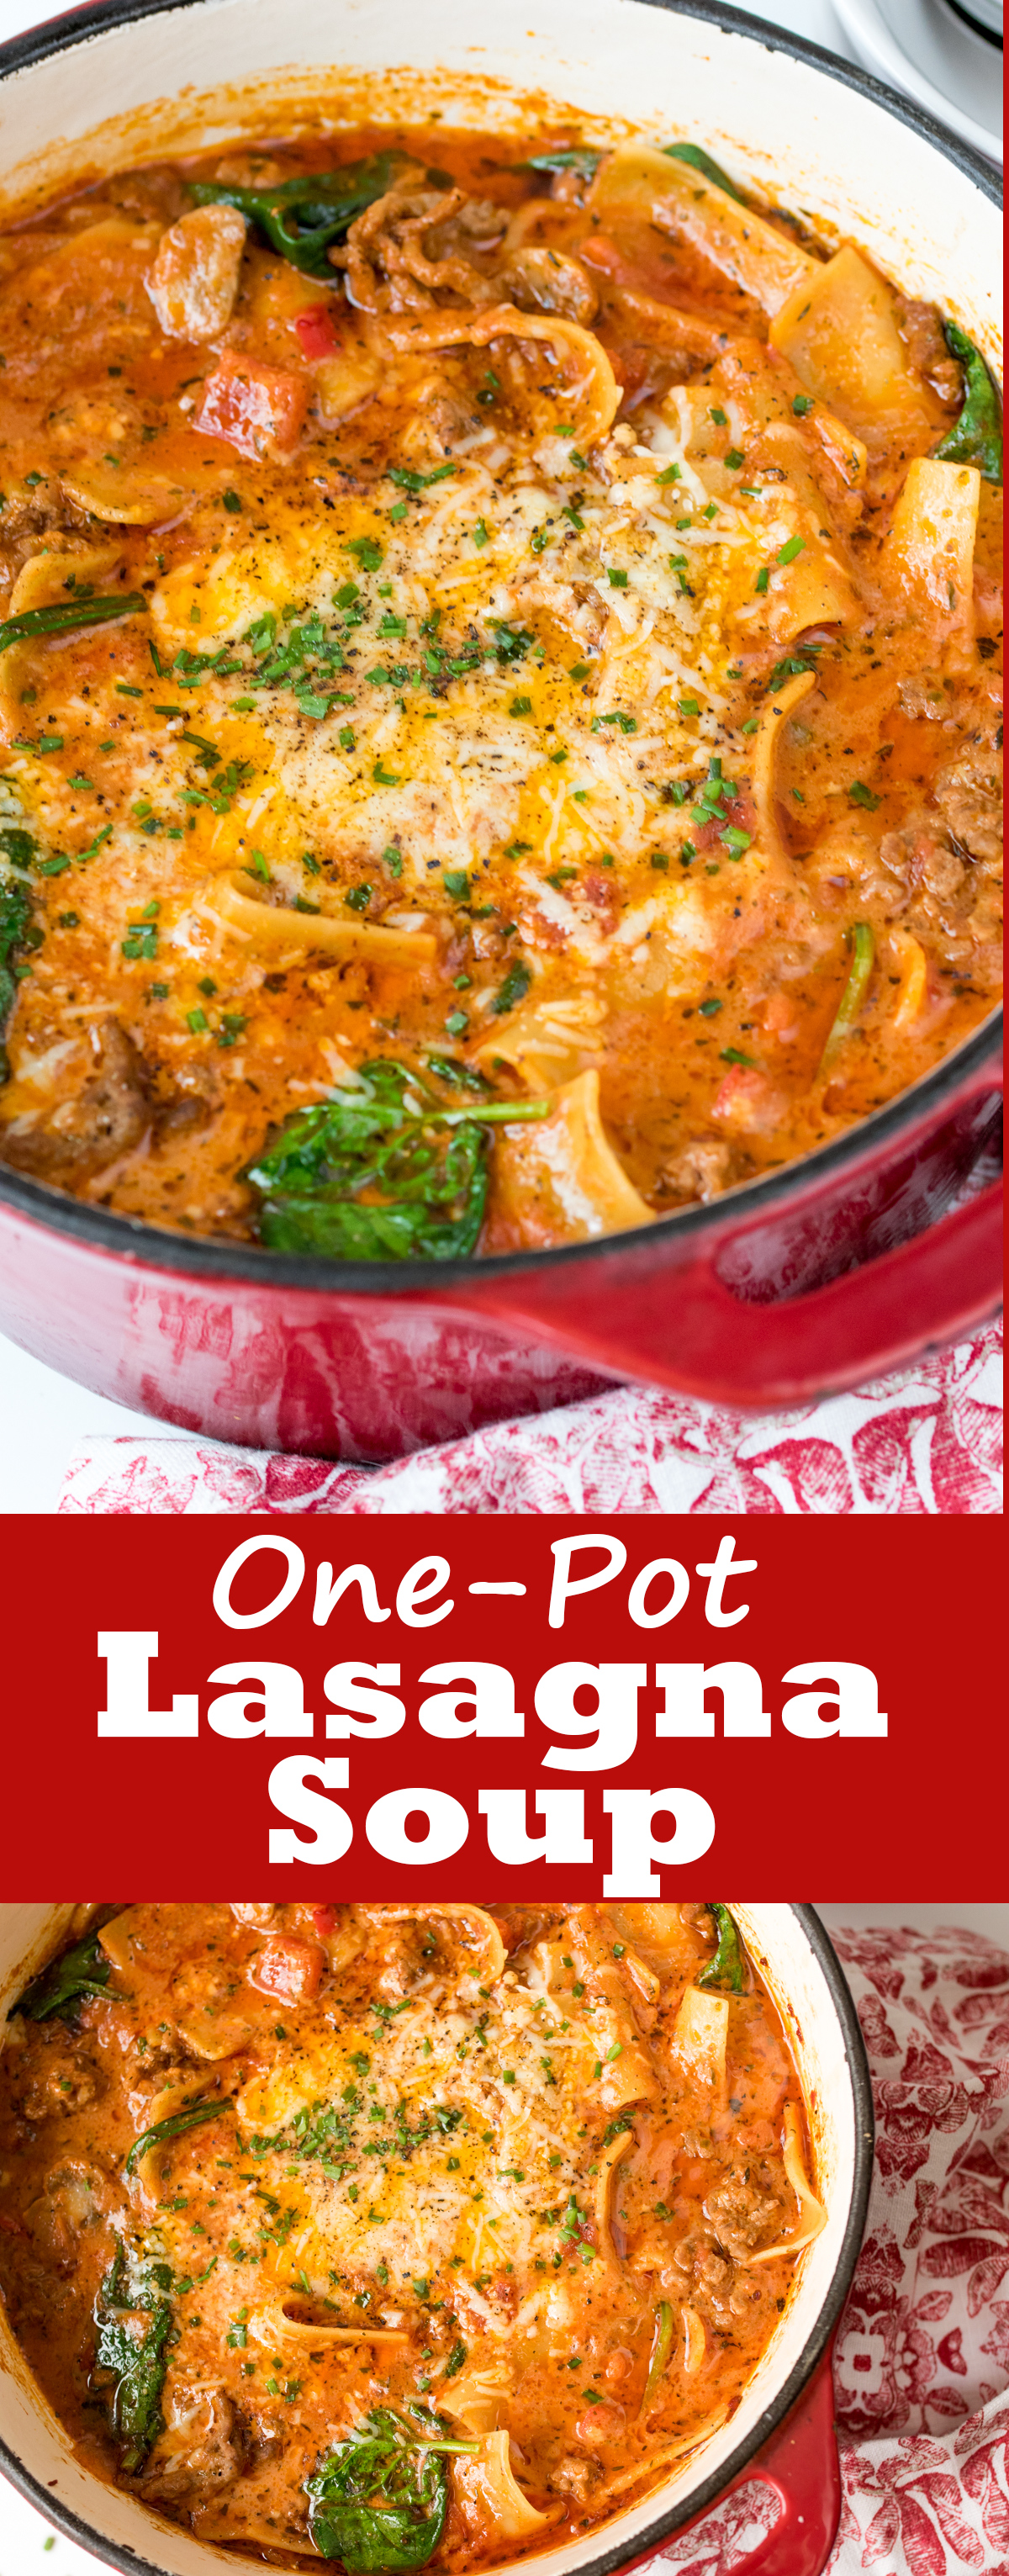 A simple, delicious soup with all the taste of lasagna - but using only one pot!